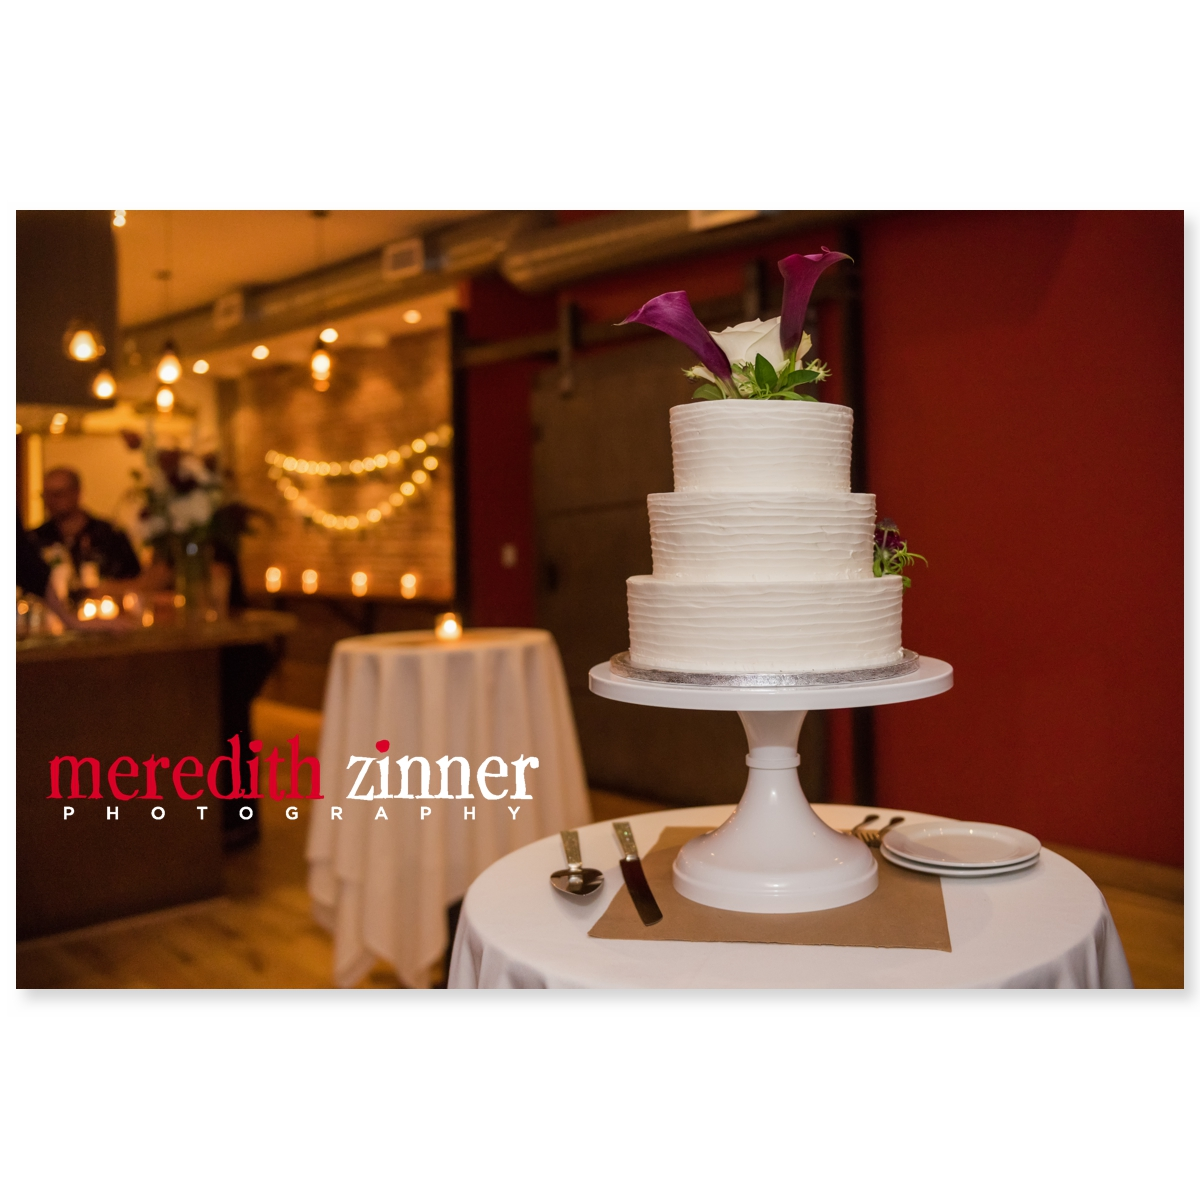 Meredith_Zinner_Photography_StilesCelebration_0287